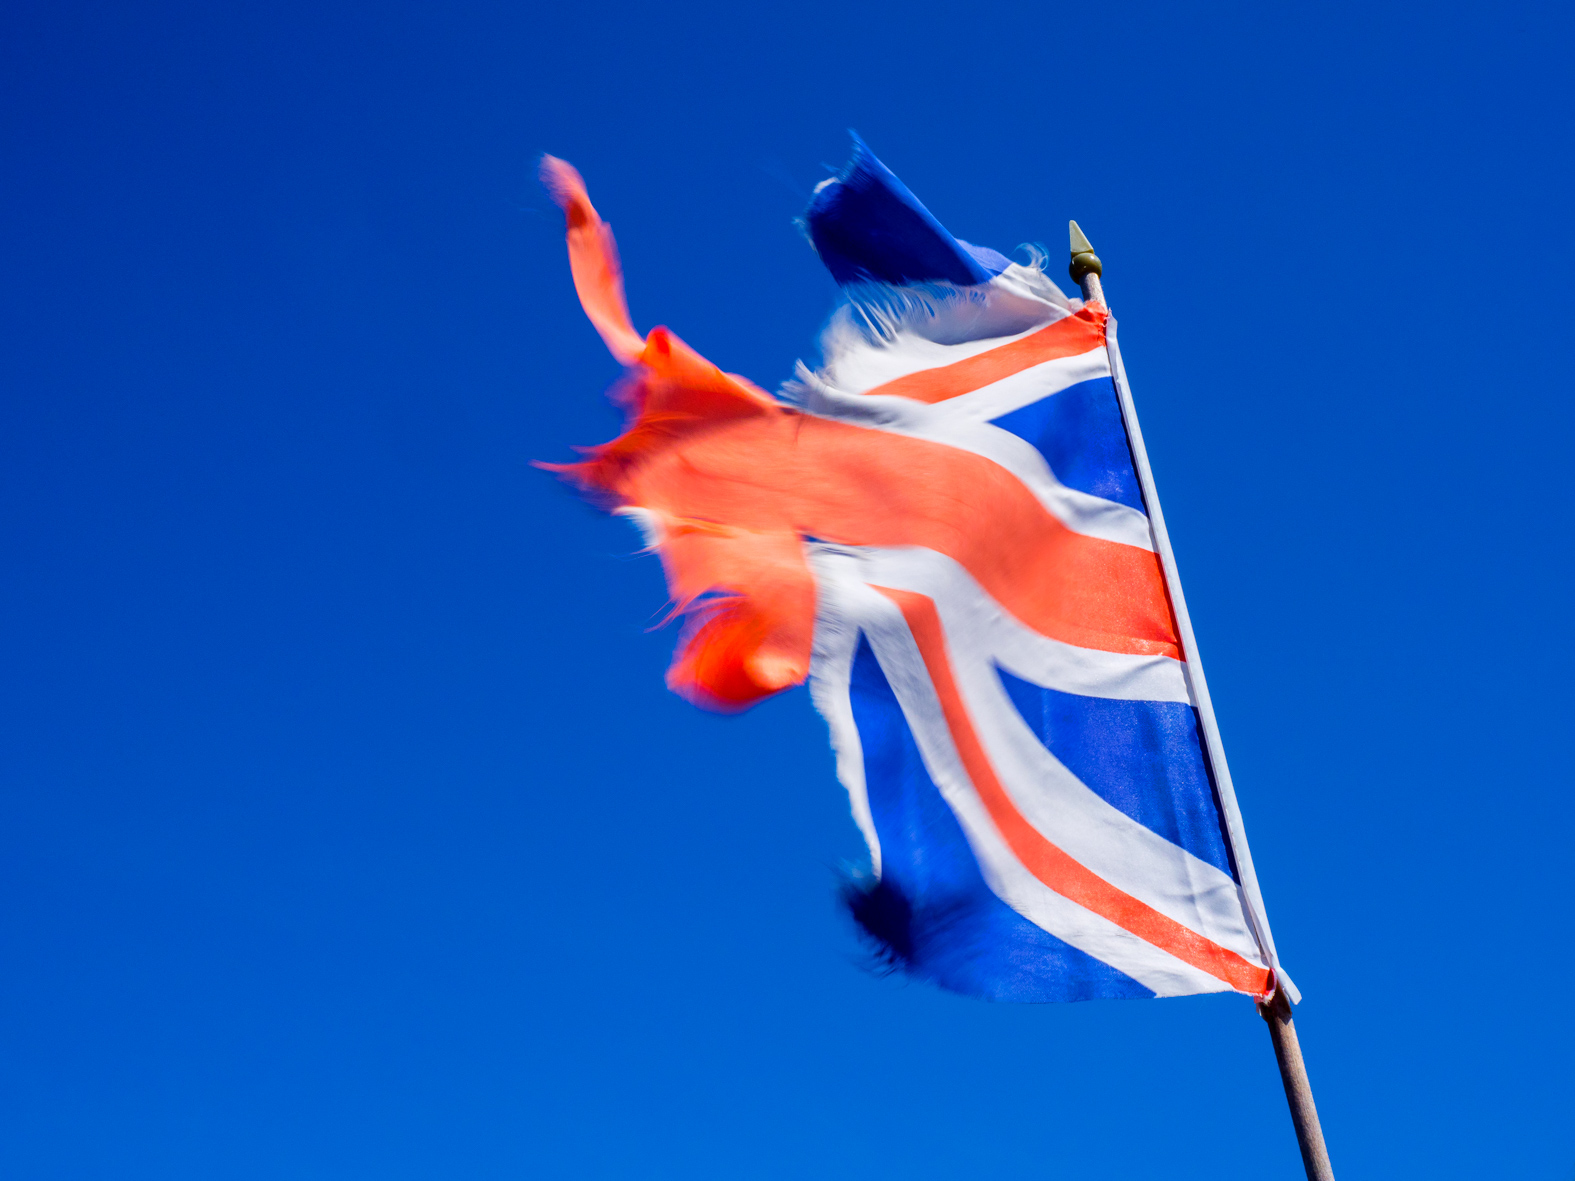 A tattered Union flag of Great britain.